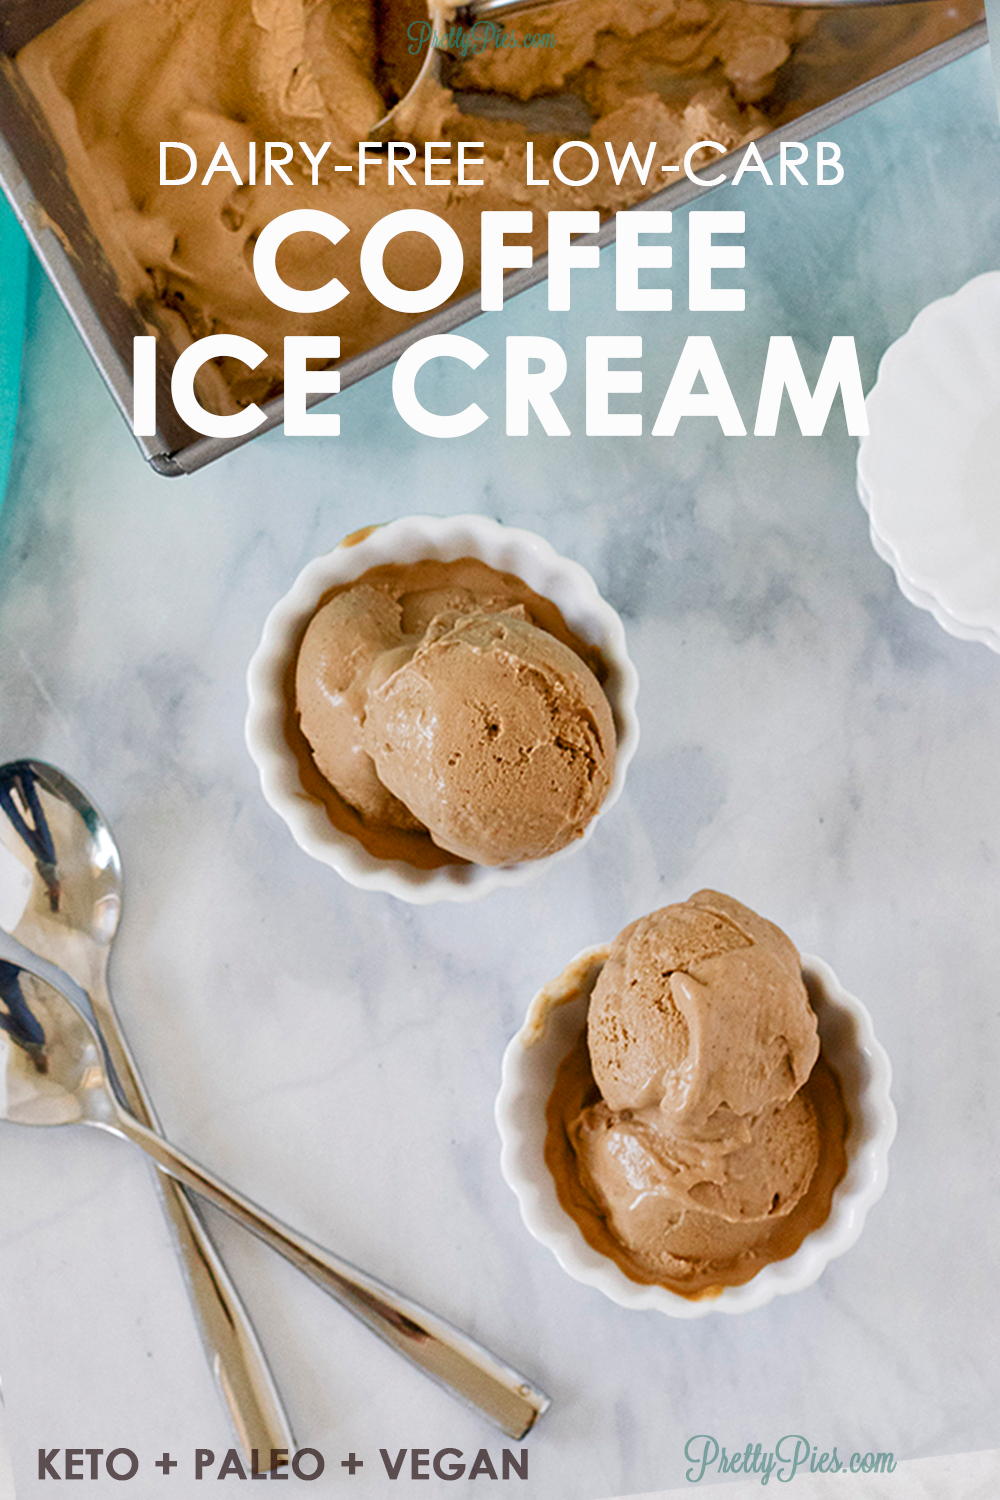 Dairy Free Coffee Ice Cream Low Carb Paleo Vegan Pretty Pies Recipe In 2020 Healthy Coffee Ice Cream Dairy Free Coffee Ice Cream Coffee Desserts Healthy